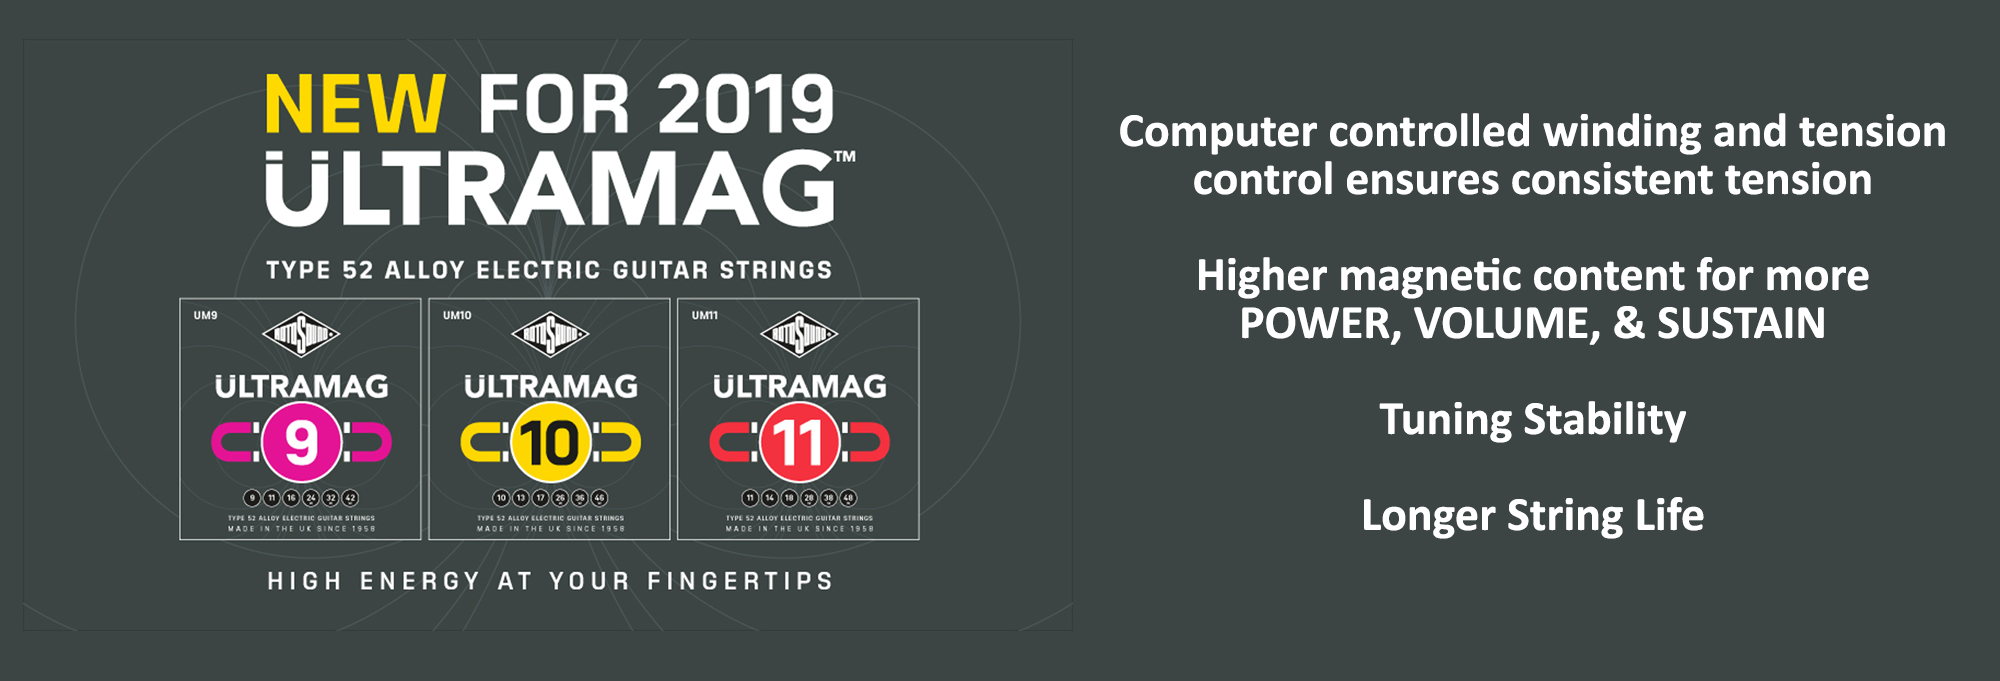 NEW FOR 2019! Rotosound Ultramag Electric Strings